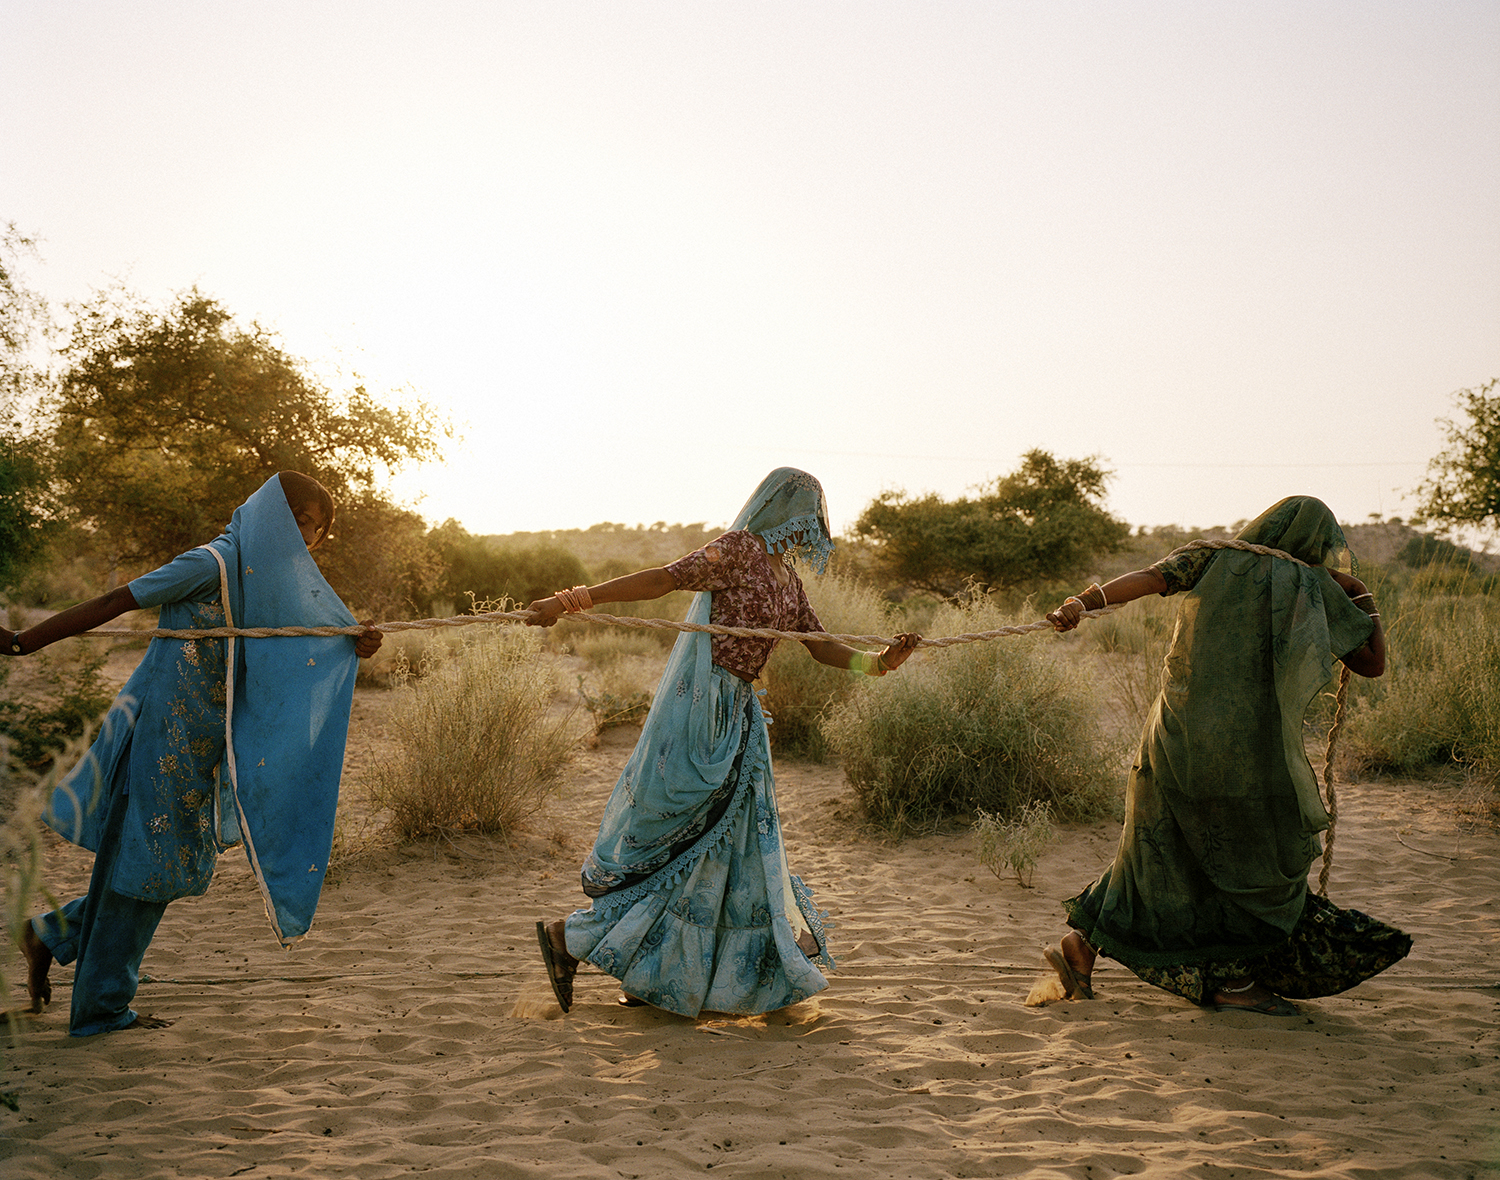 Women pull water from a well. Tharpakar, Pakistan, 2013.